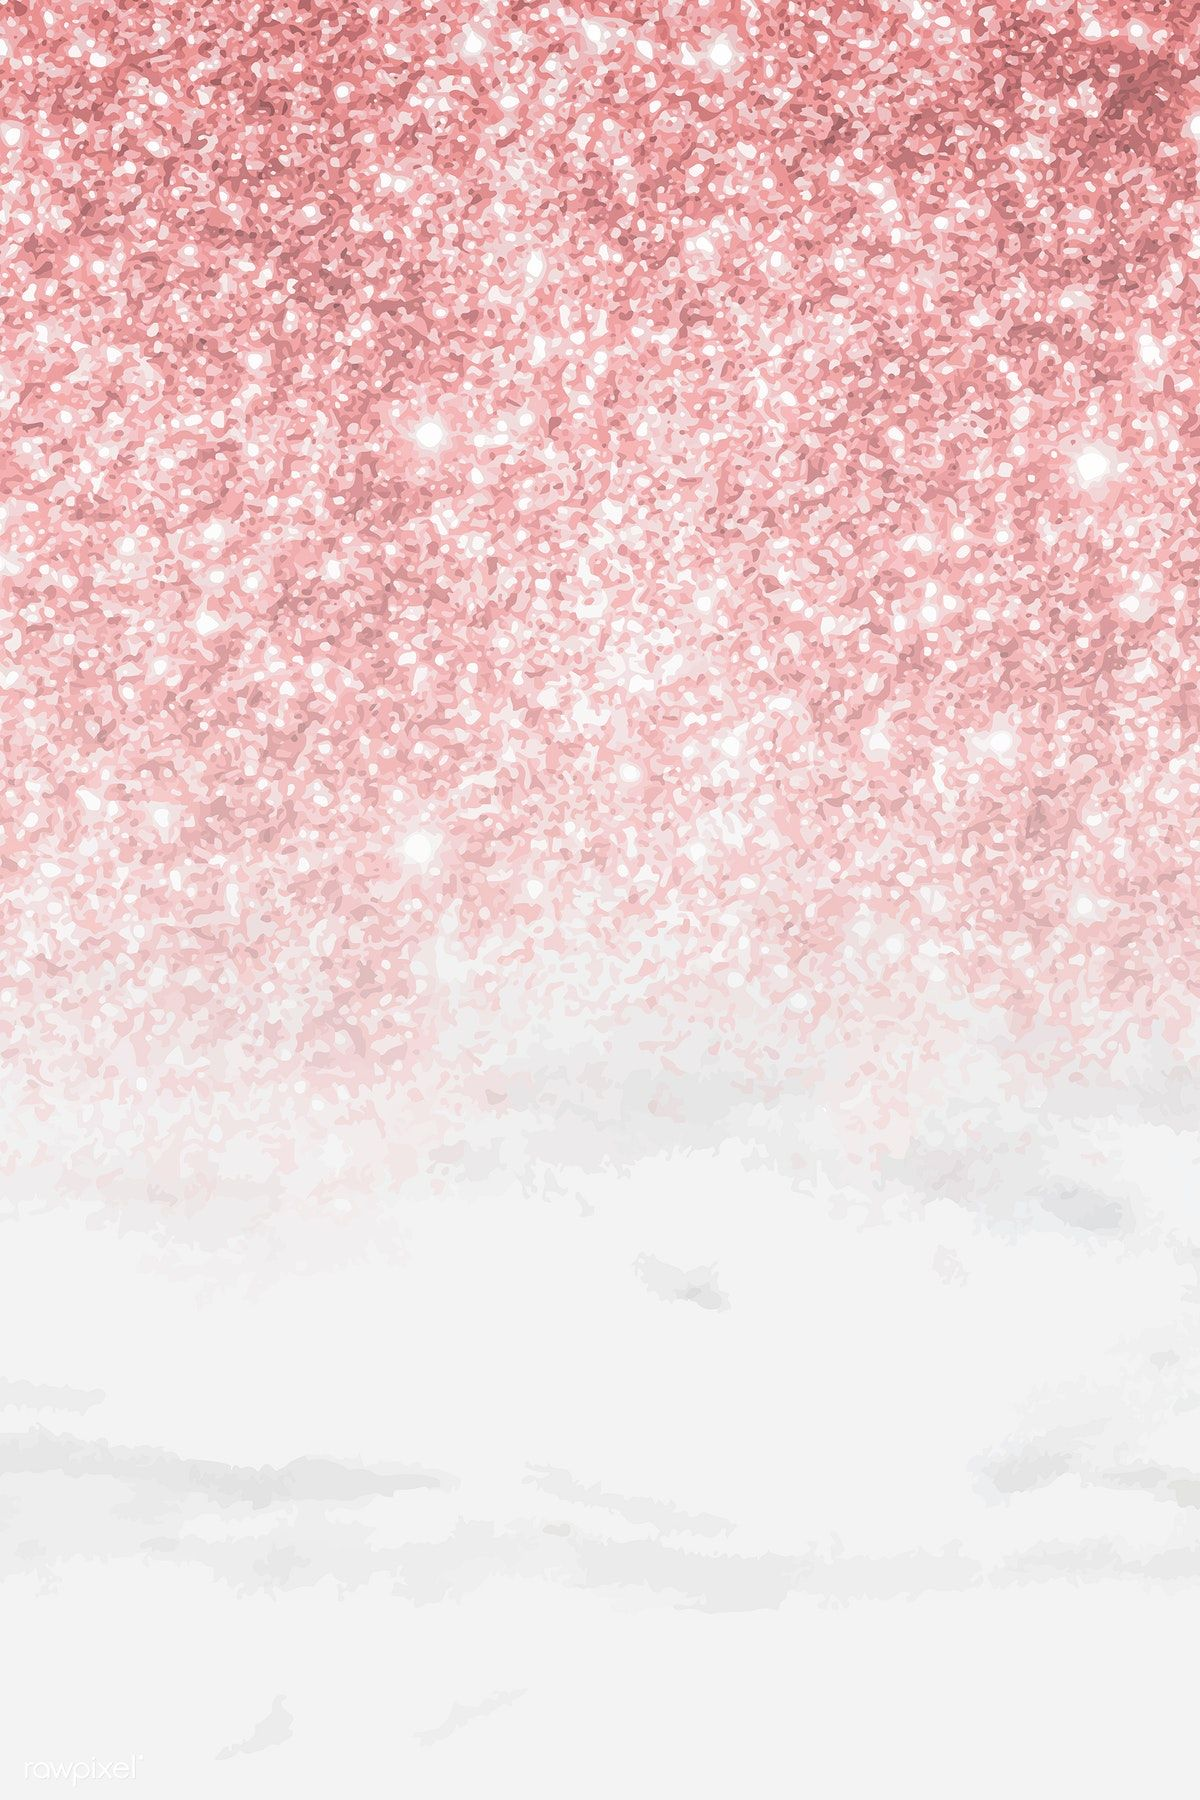 Download premium illustration of Pink glittery pattern on